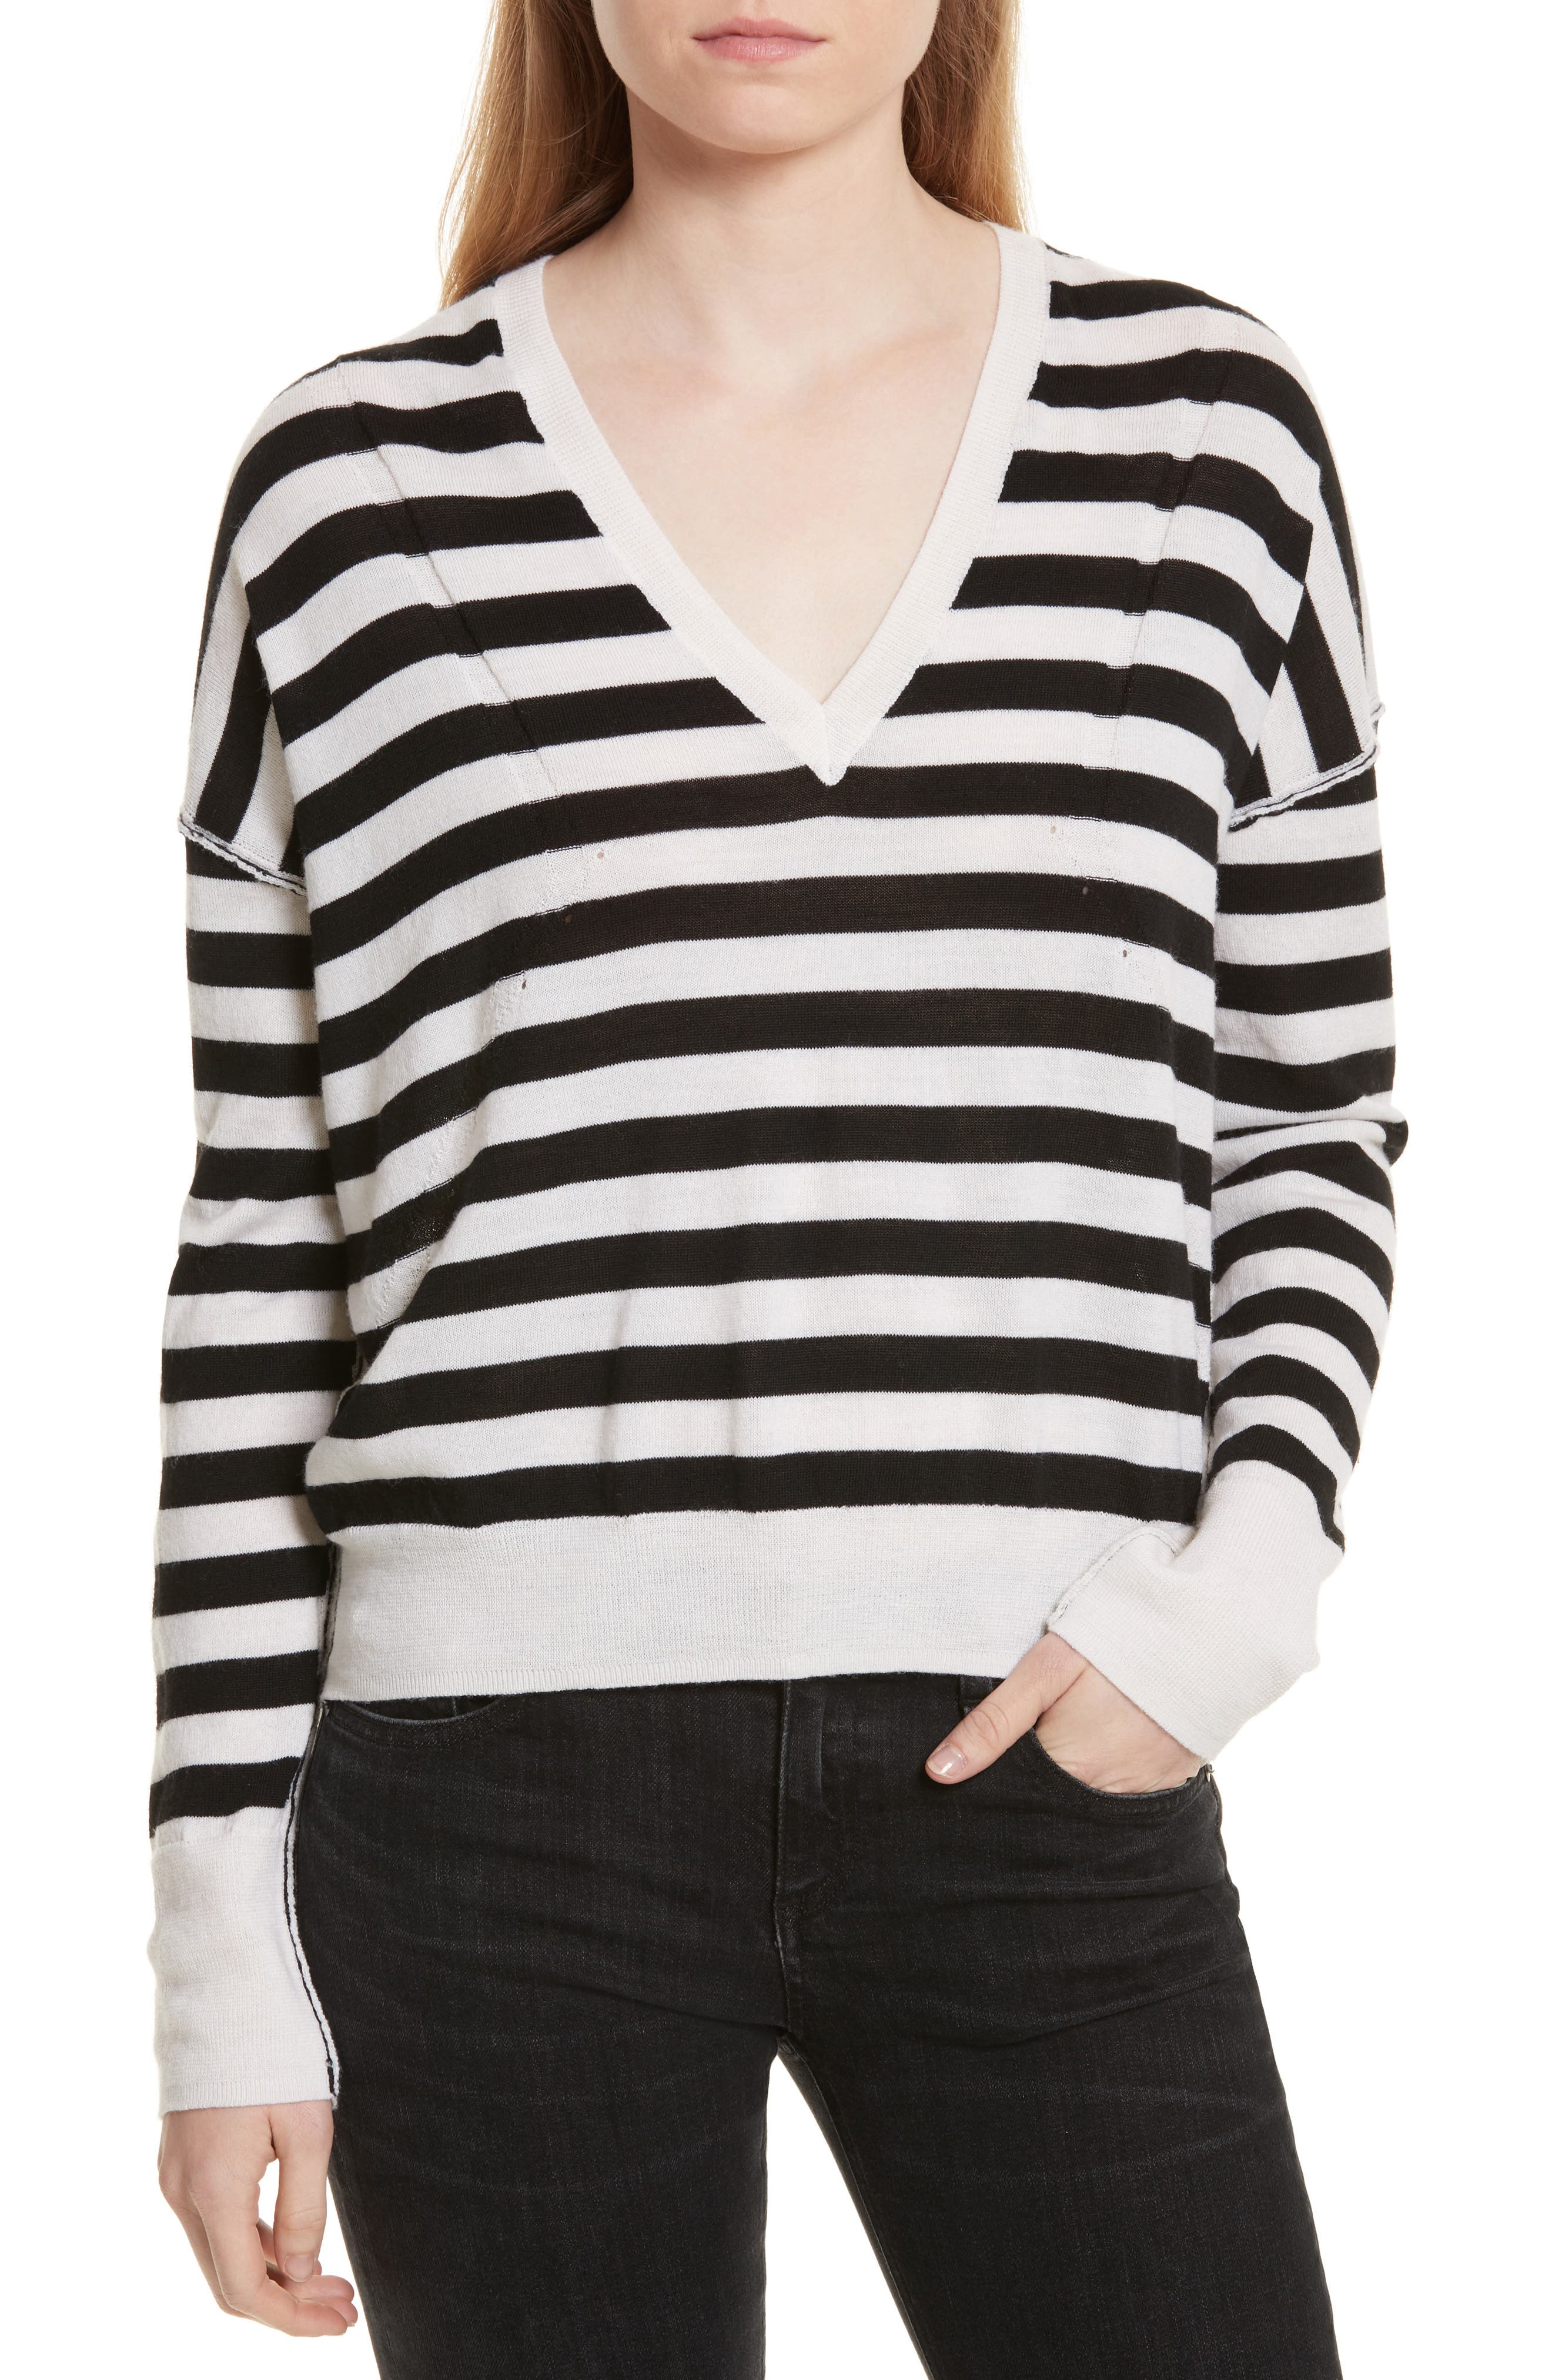 Bevan Stripe Wool Sweater,                             Main thumbnail 1, color,                             White/ Black